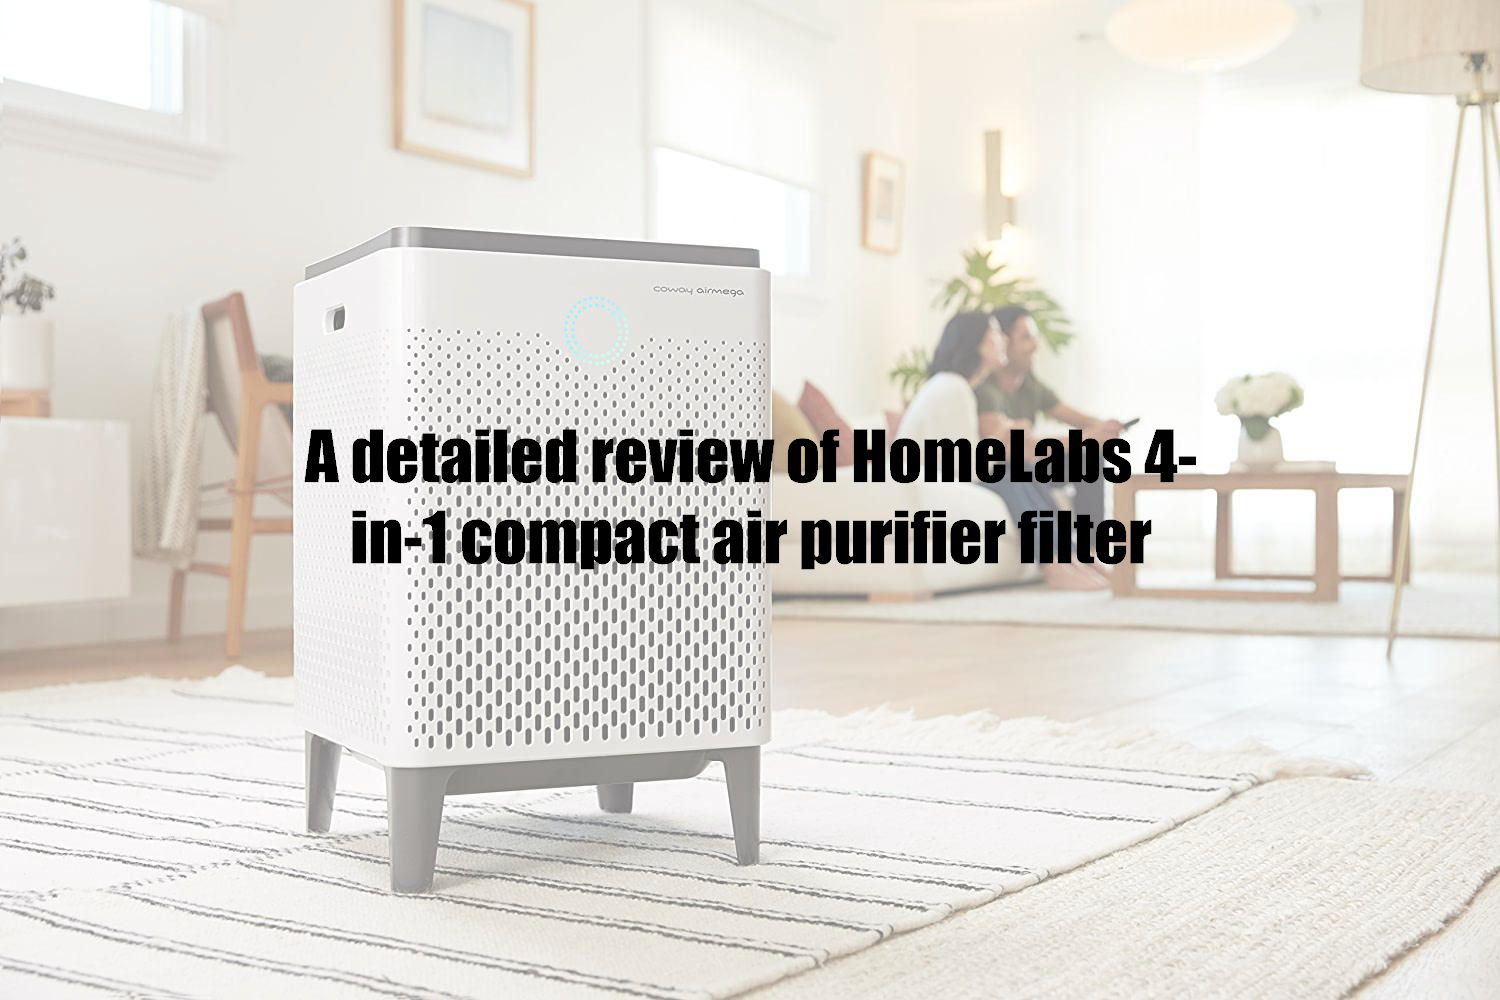 A detailed review of HomeLabs 4-in-1 compact air purifier filter